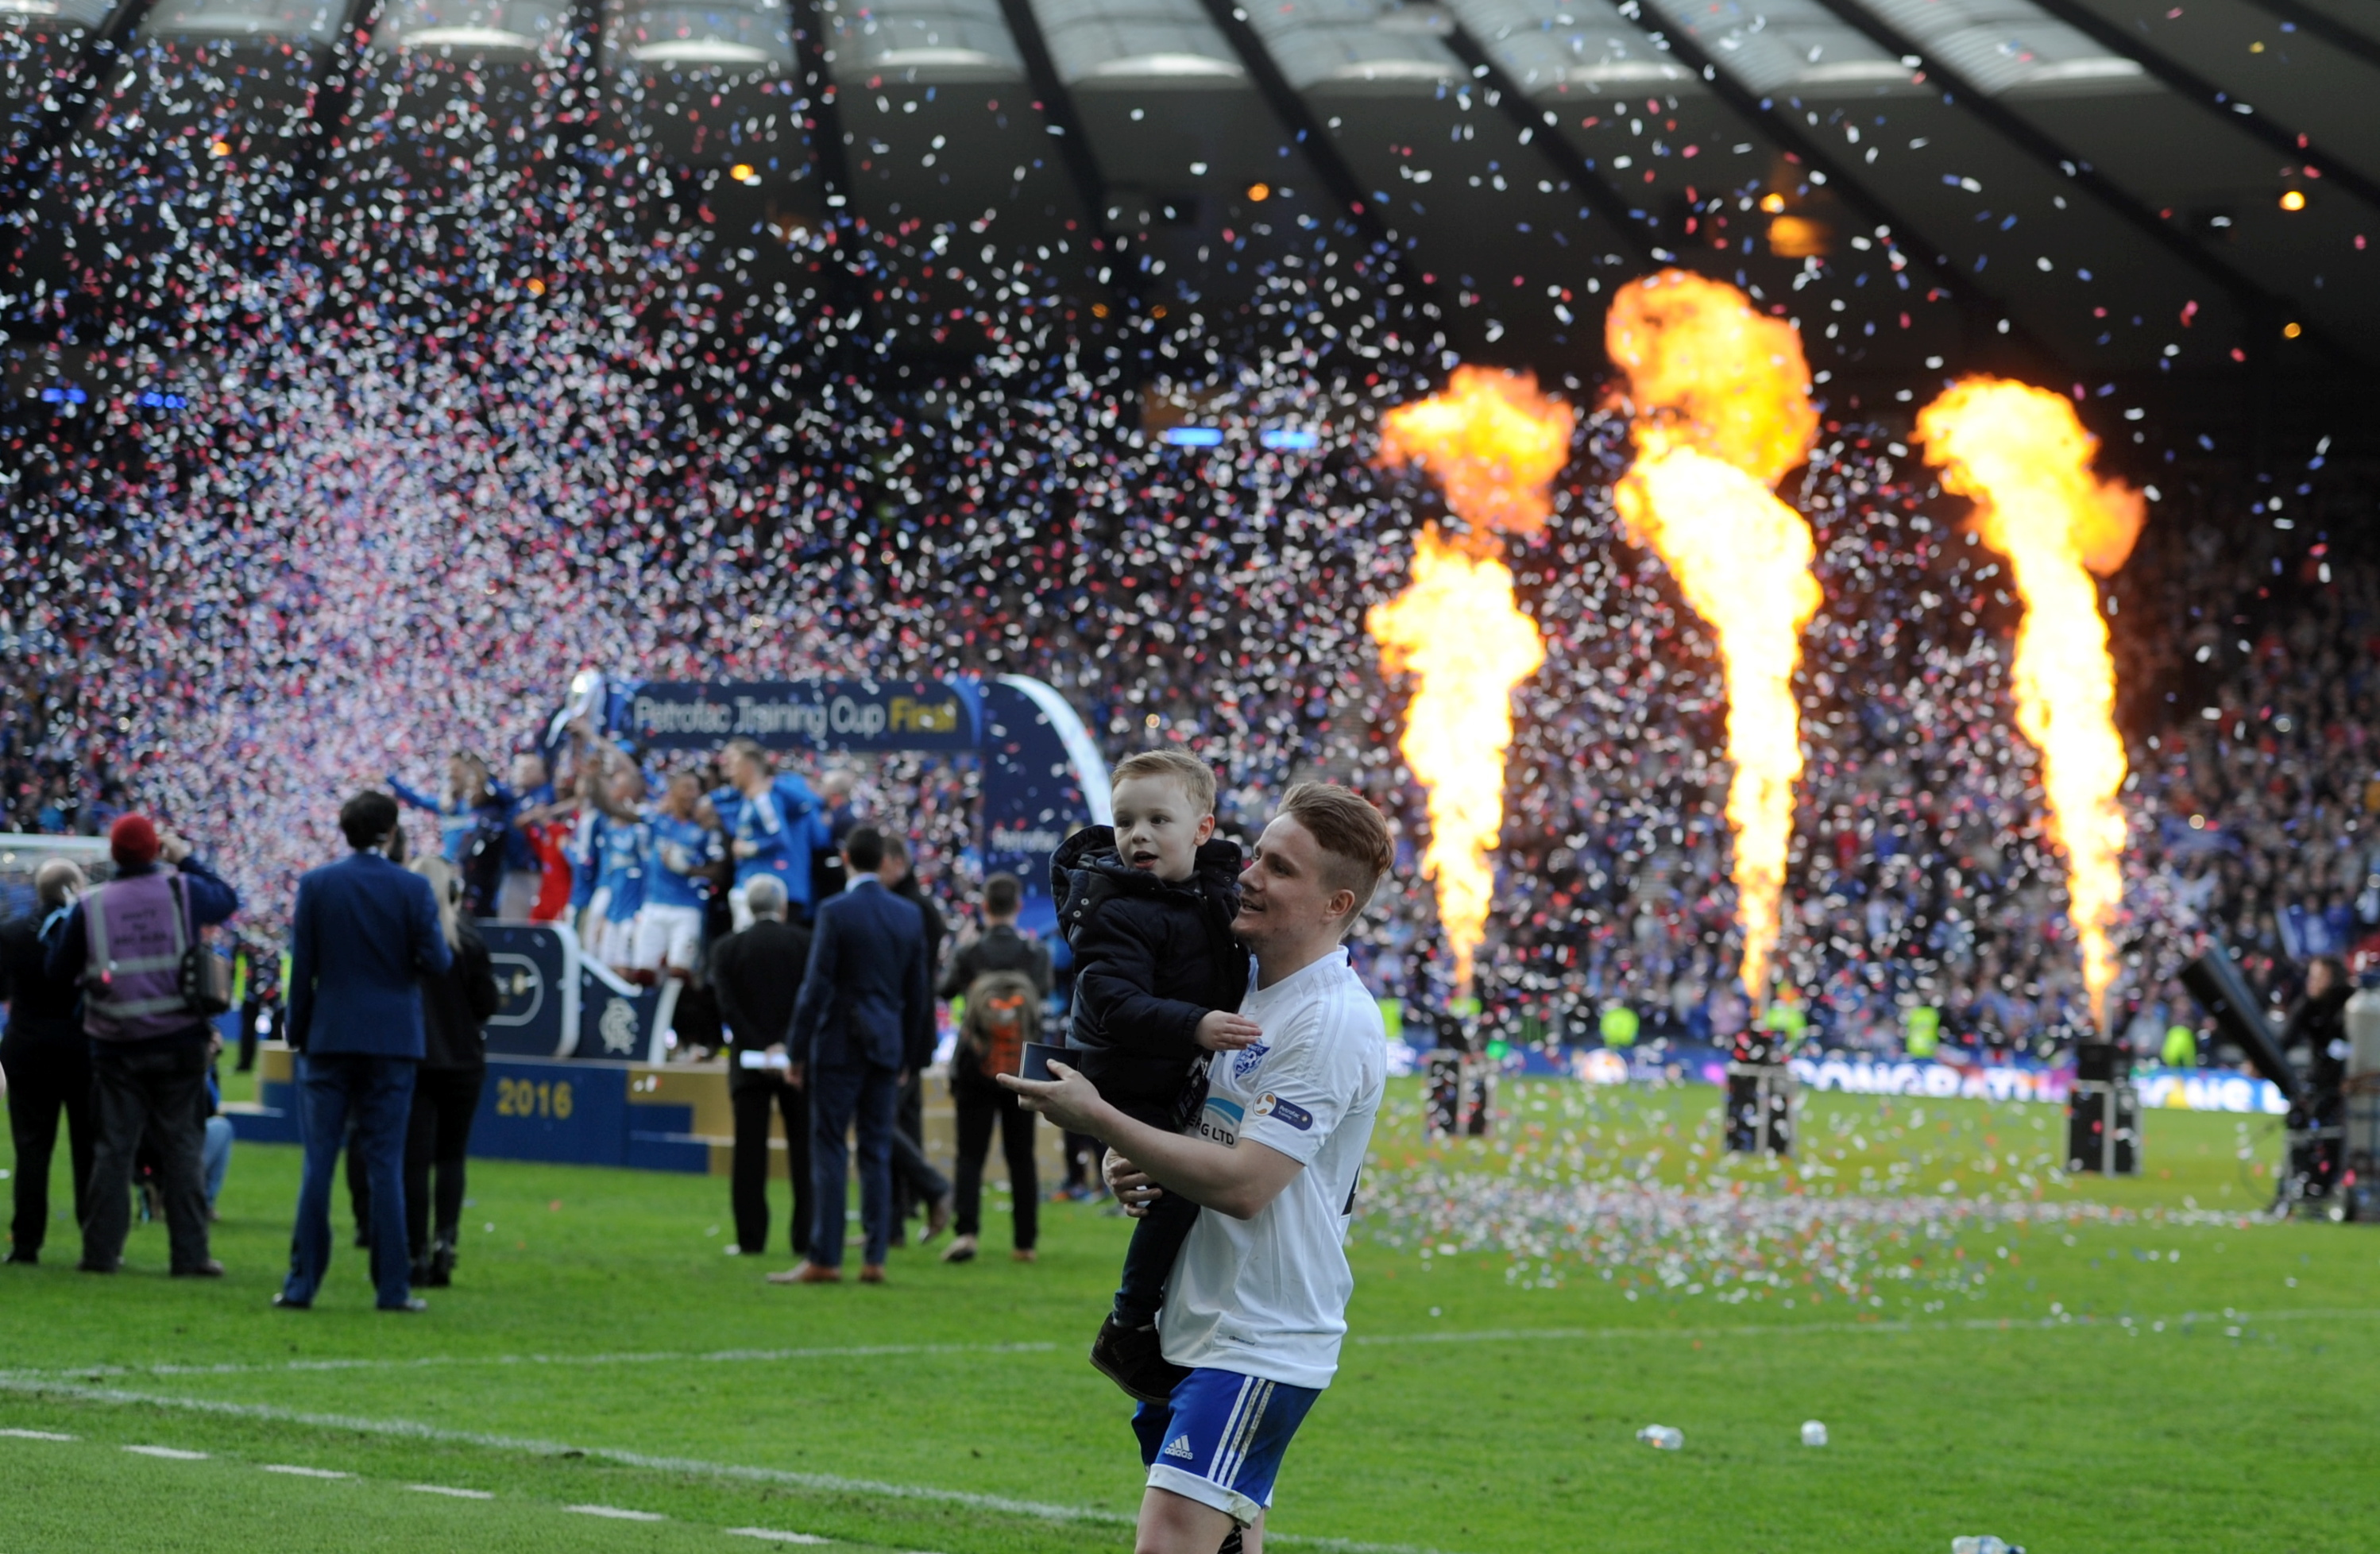 Simon Ferry as Rangers lift the trophy in the background.